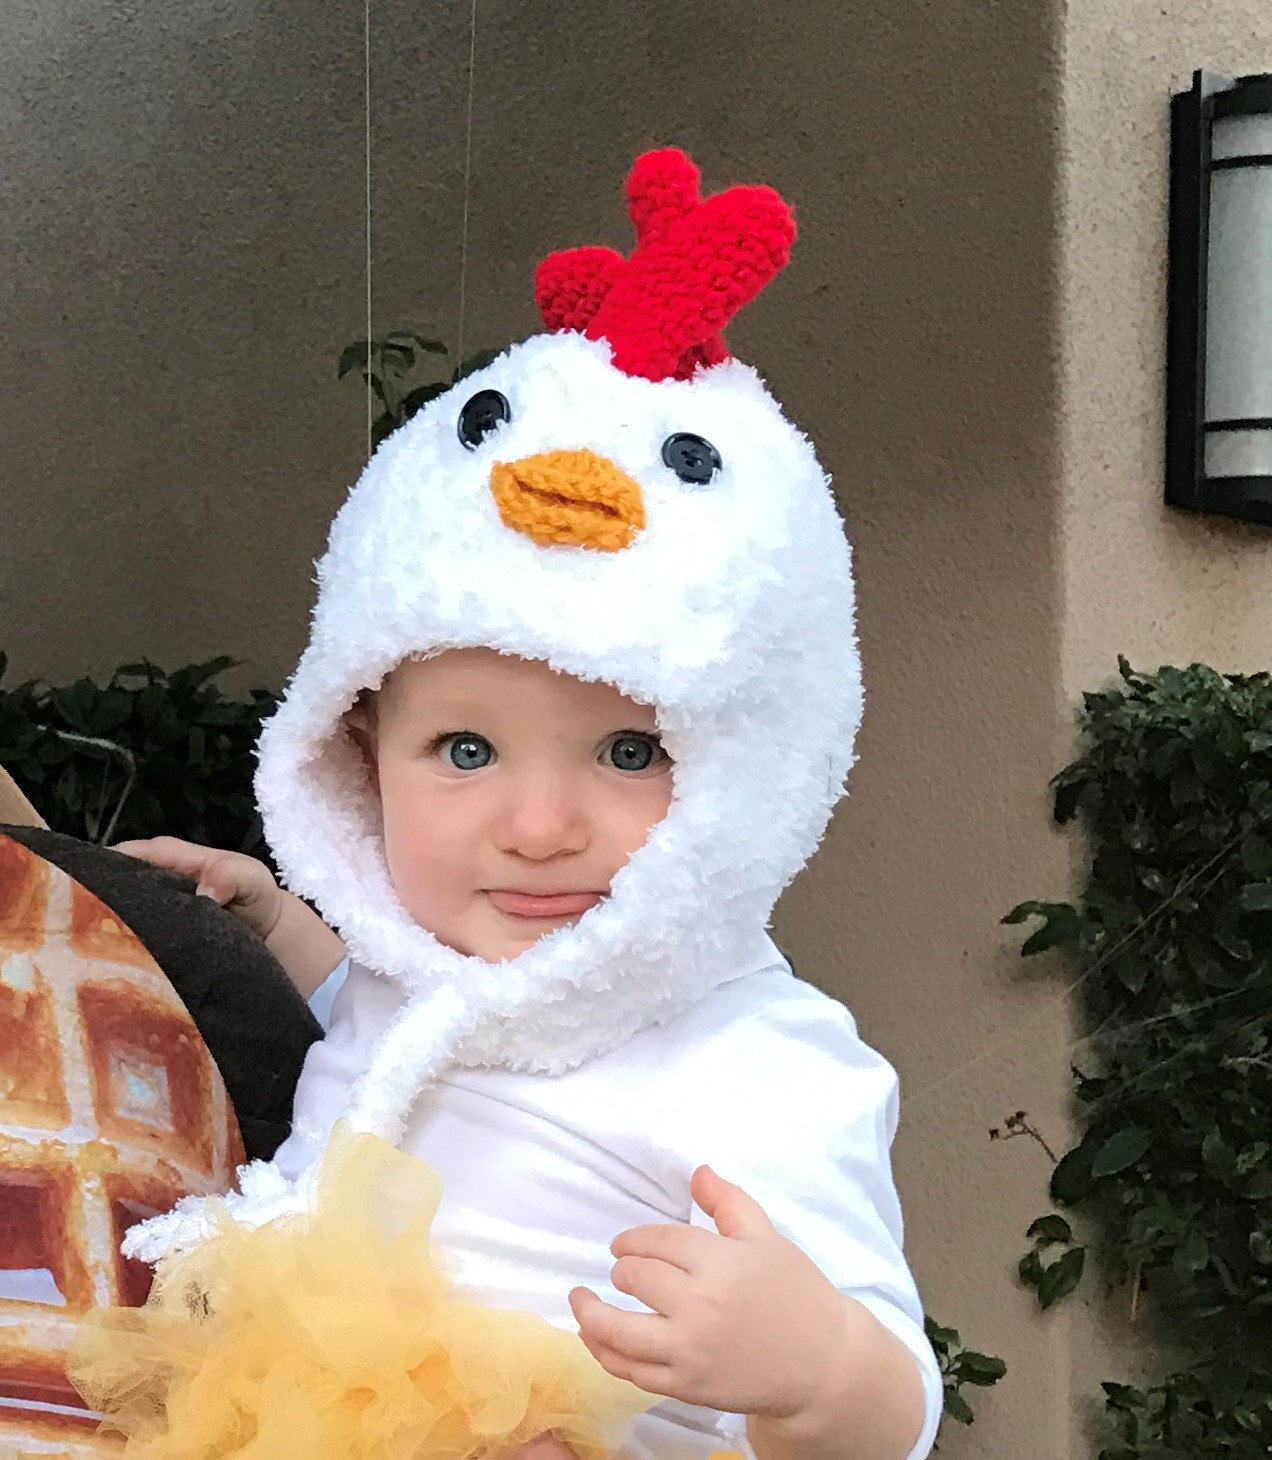 Luxury Chicken Hat Baby Hat Baby Chicken Hat Easter Chick Hat Baby Chicken Hat Of Elegant Baby Chick Hat Chicken Hat Newborn 3m 6m Cute Crochet Baby Chicken Hat